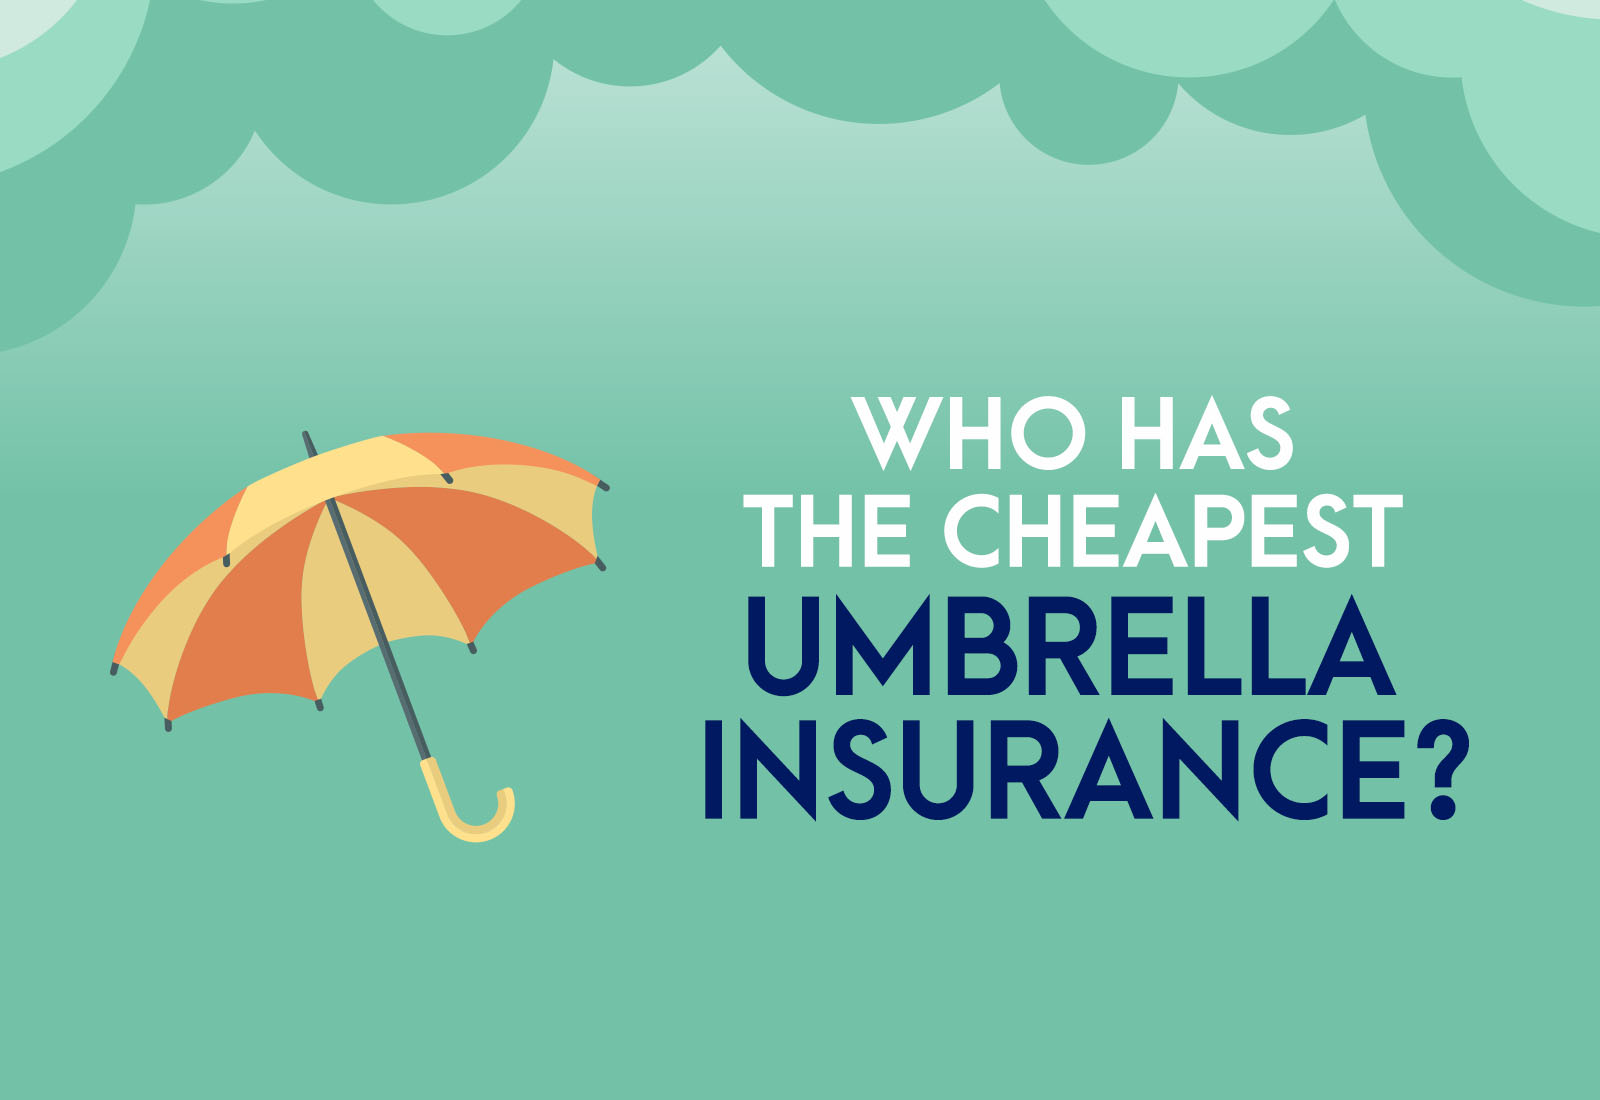 Who has the Cheapest Umbrella Insurance?